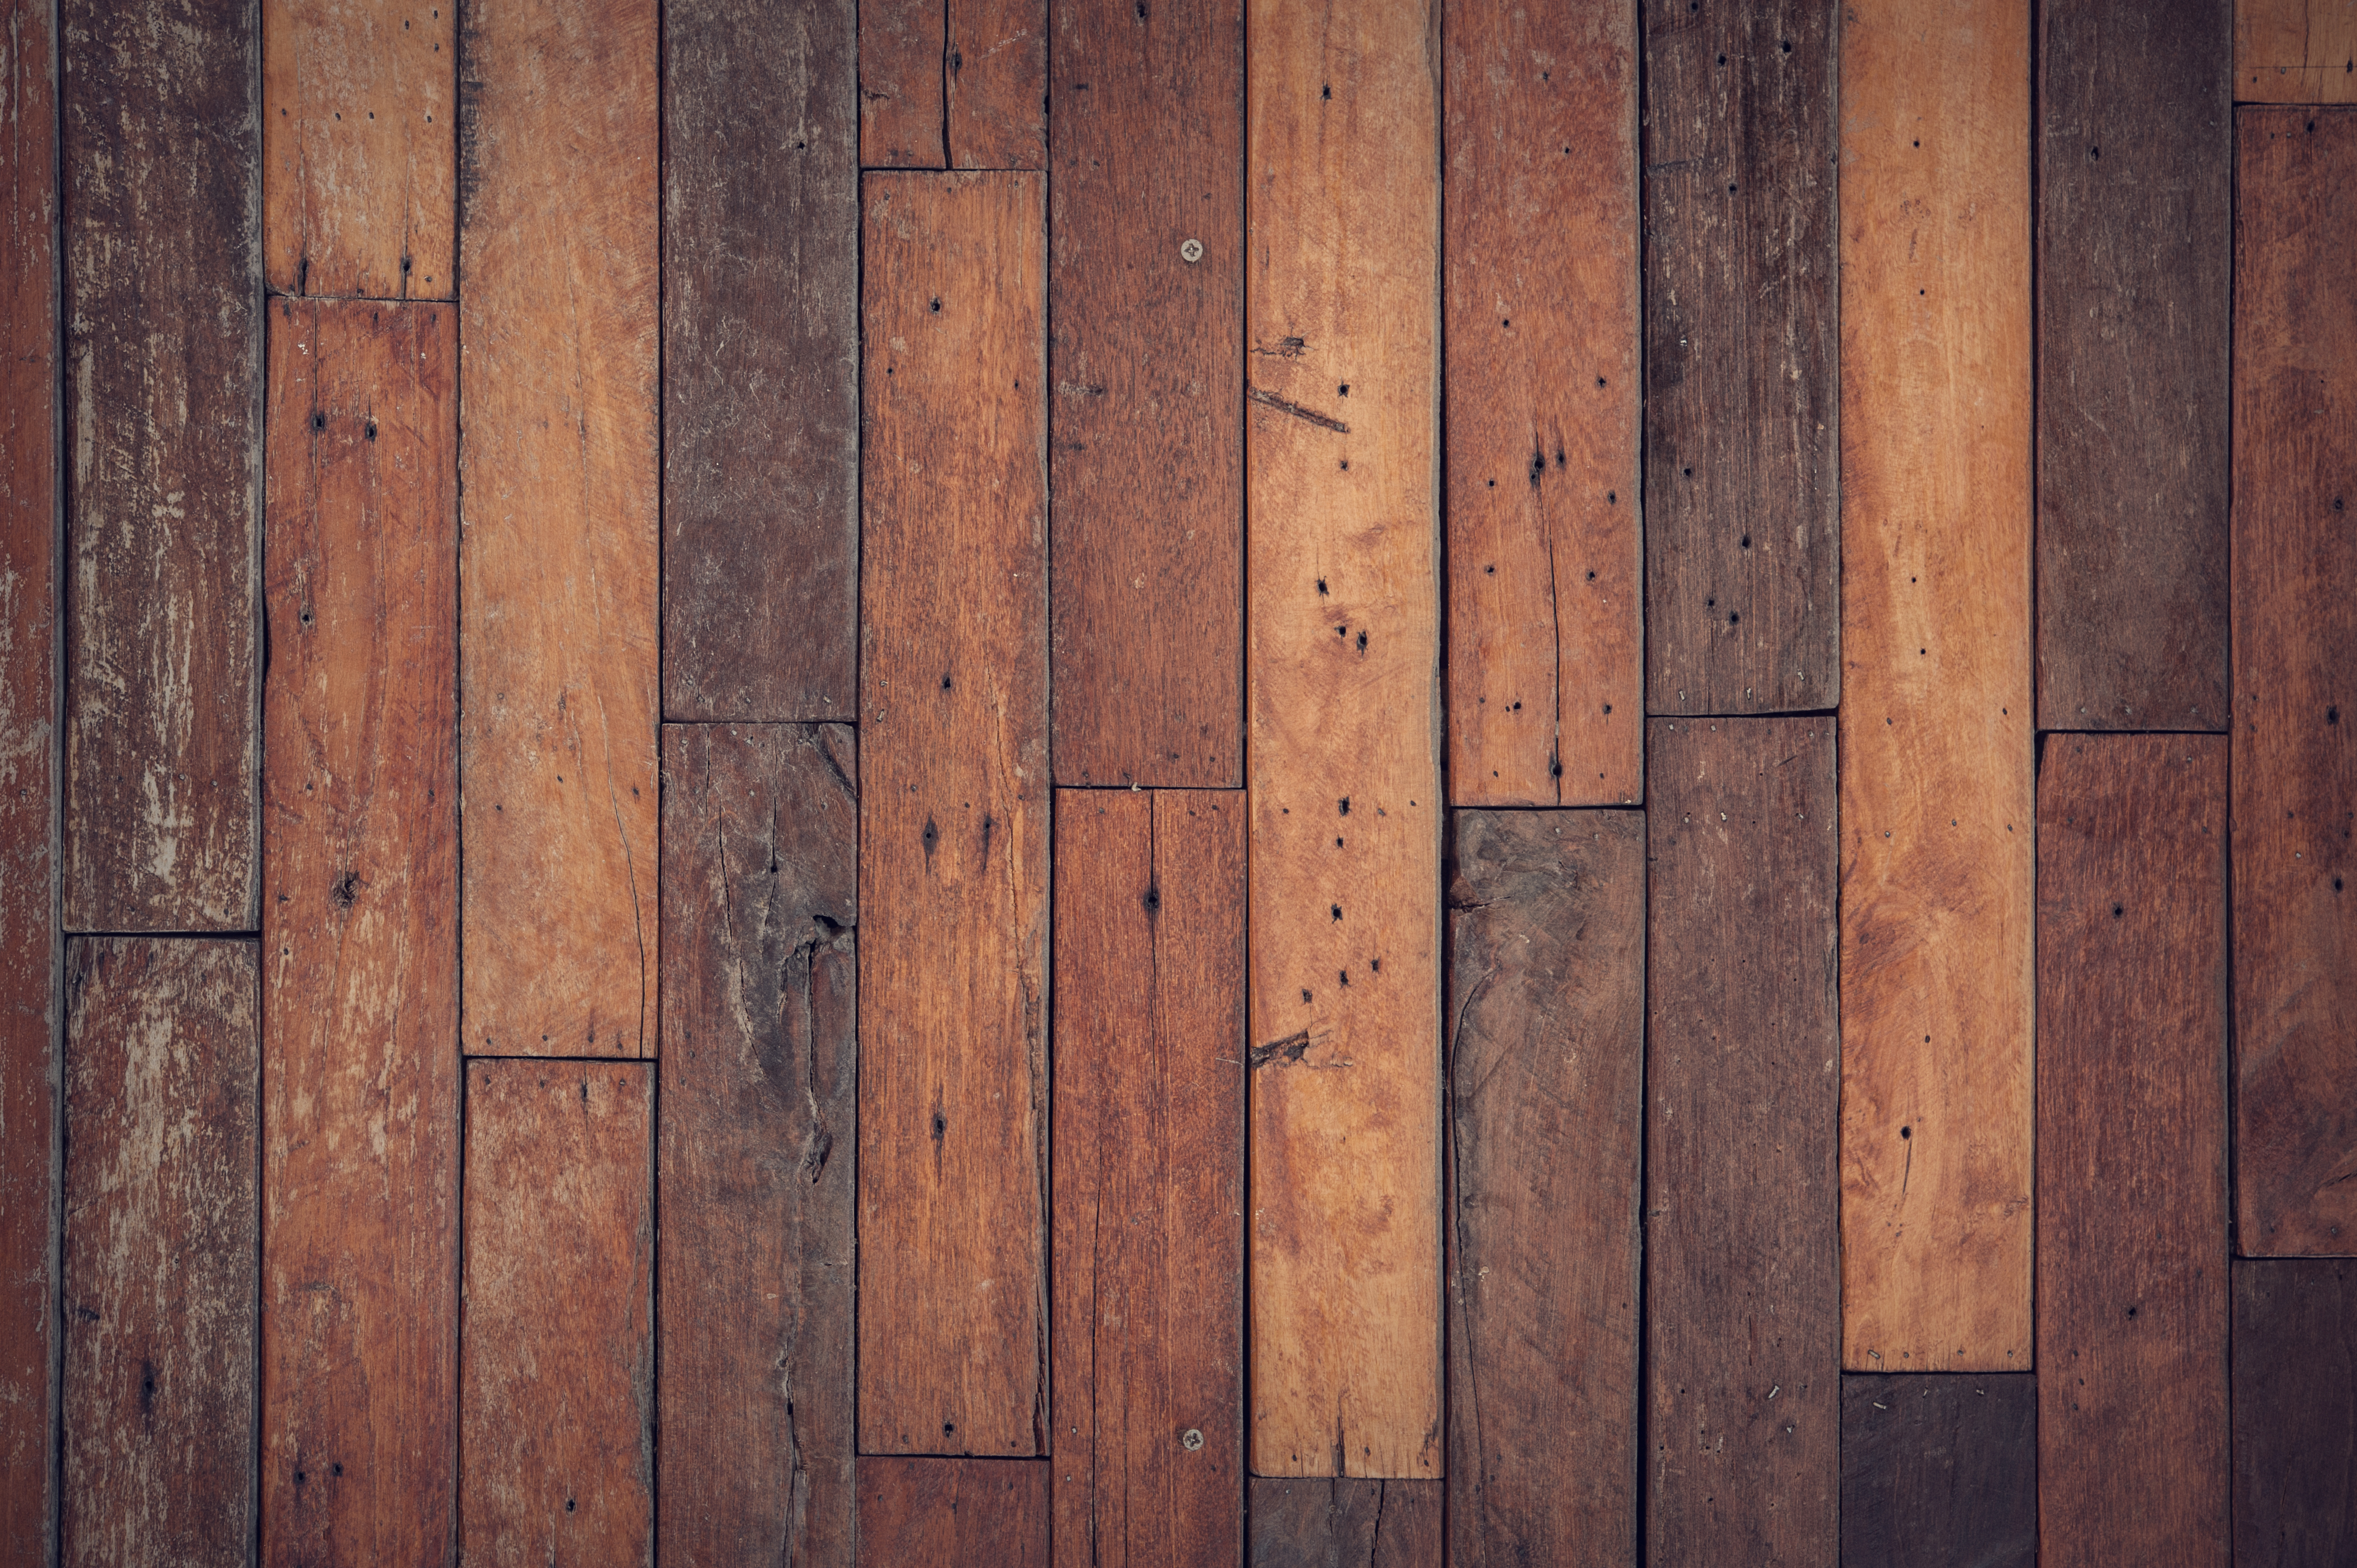 wooden floors is a natural oil finish right for your hardwood floor? via @macwoods BVXAOPZ